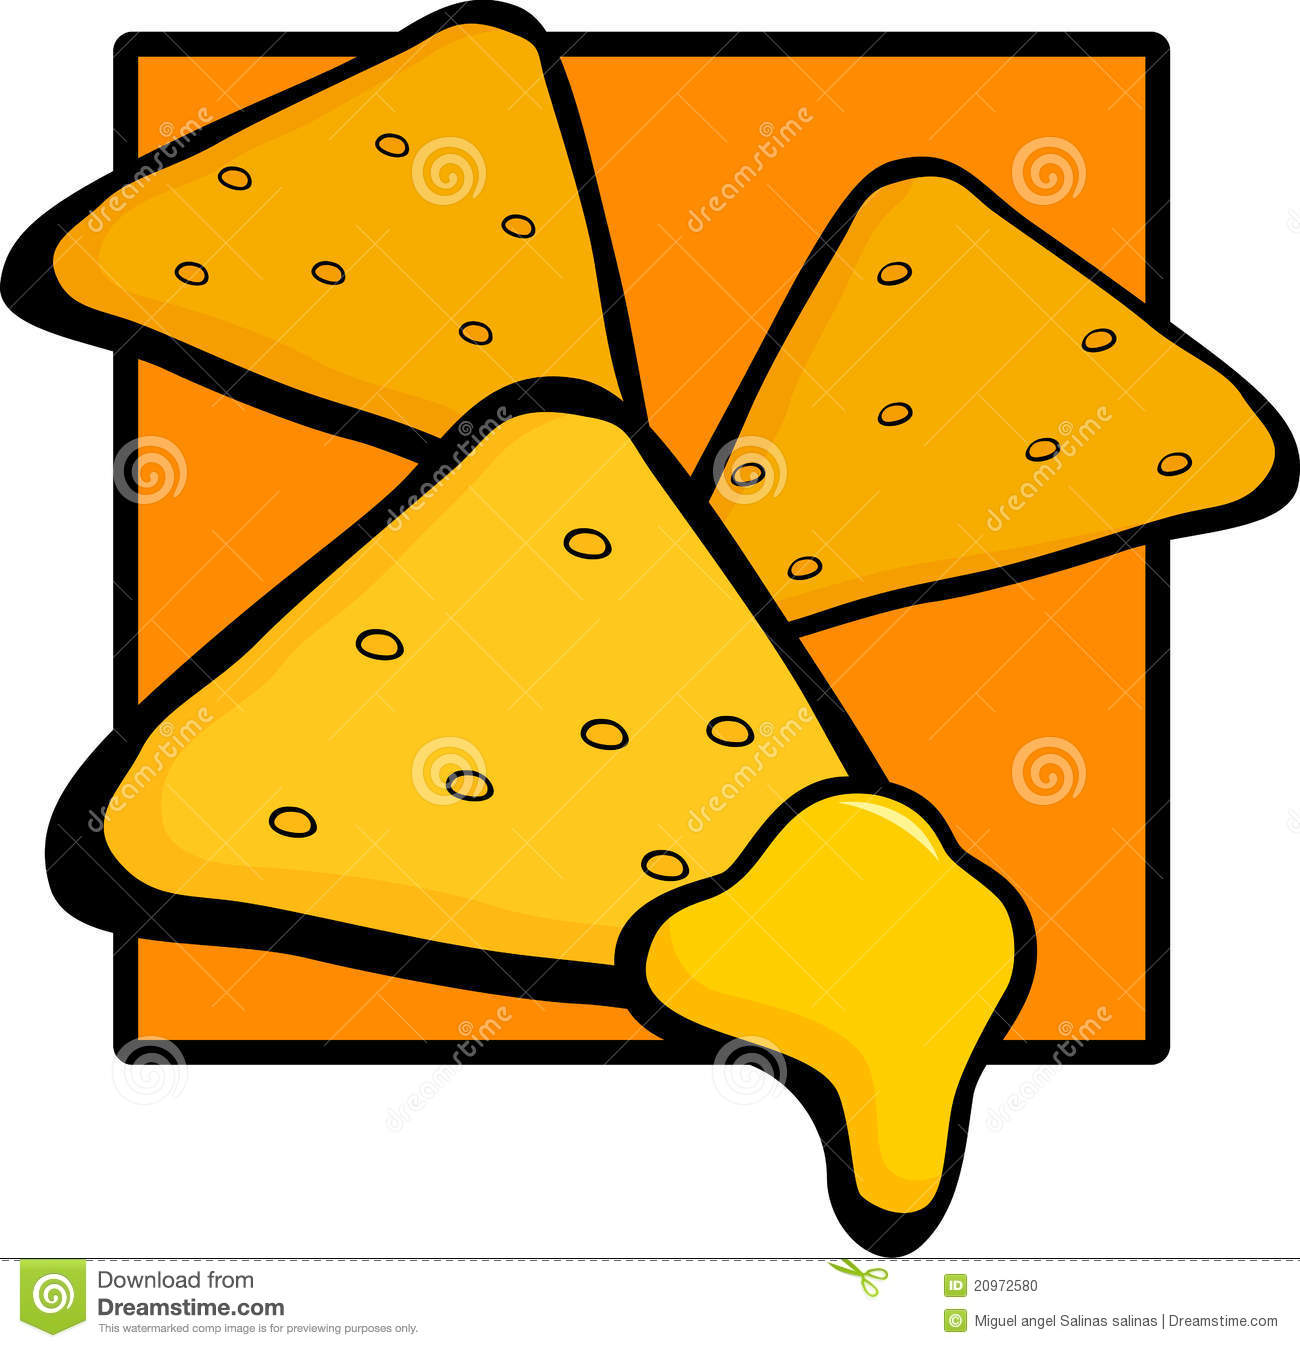 Cartoon nachos free download. Chips clipart nacho chip